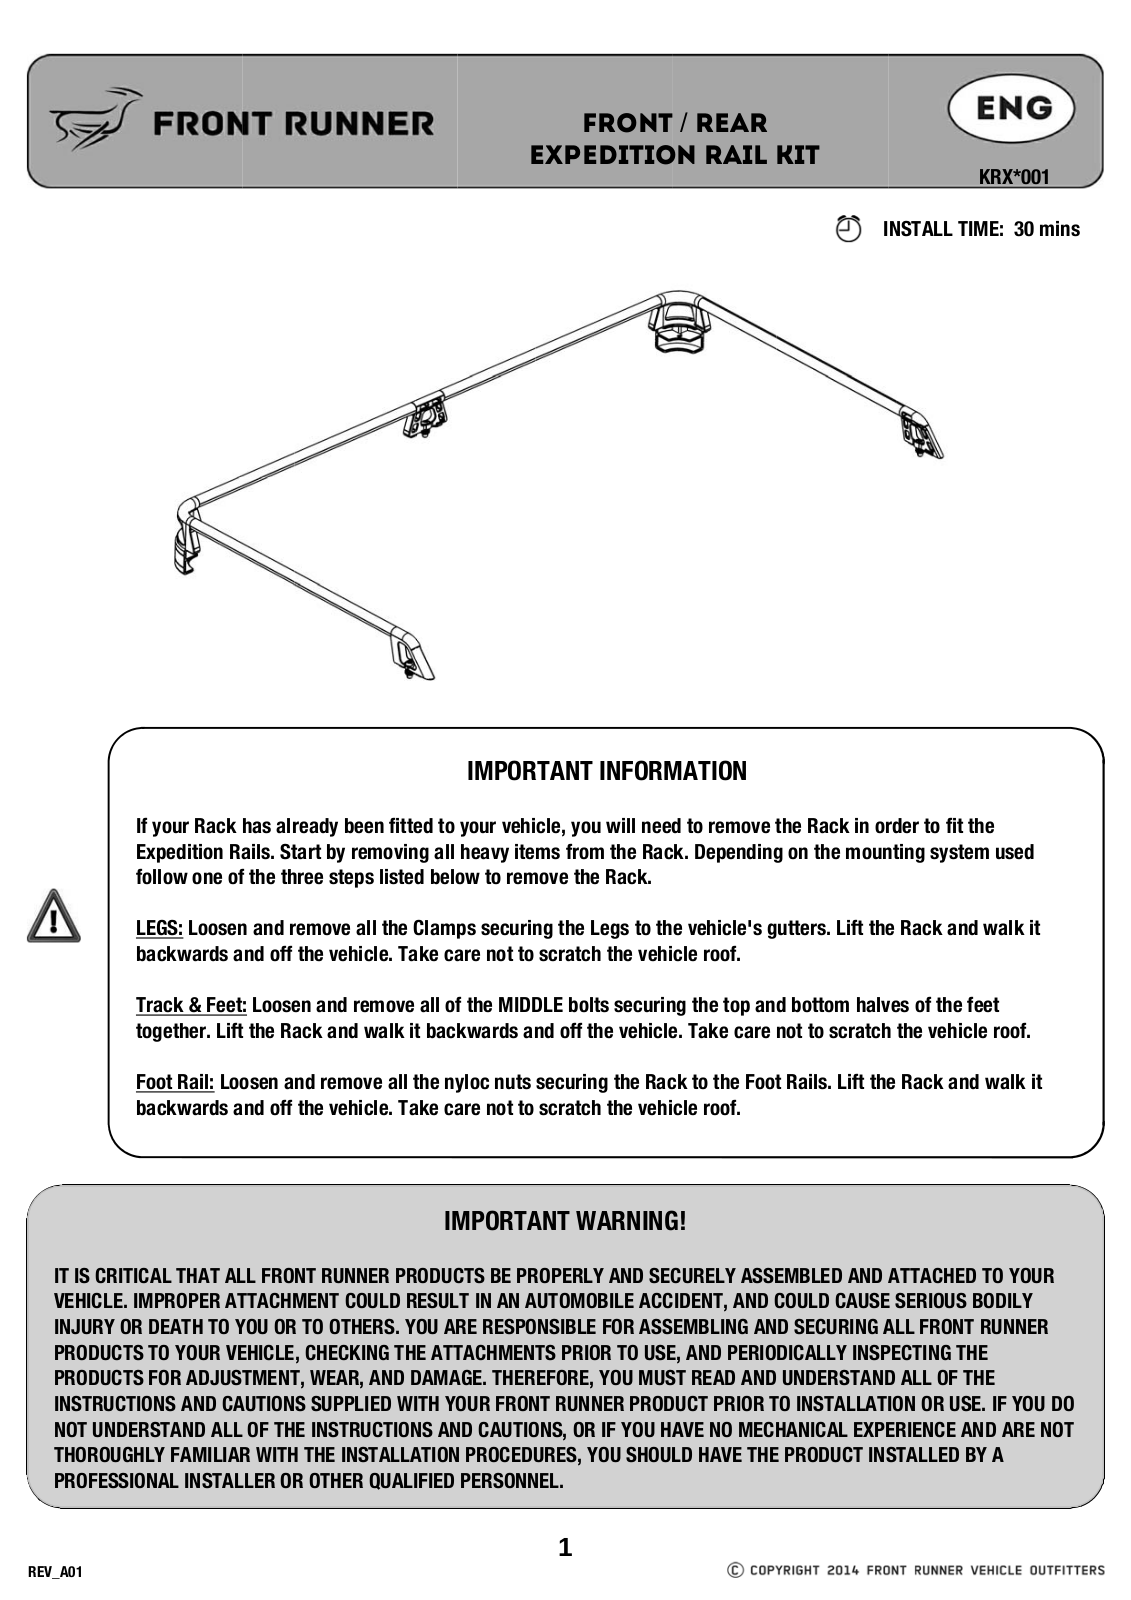 Installation instructions for KRXM002